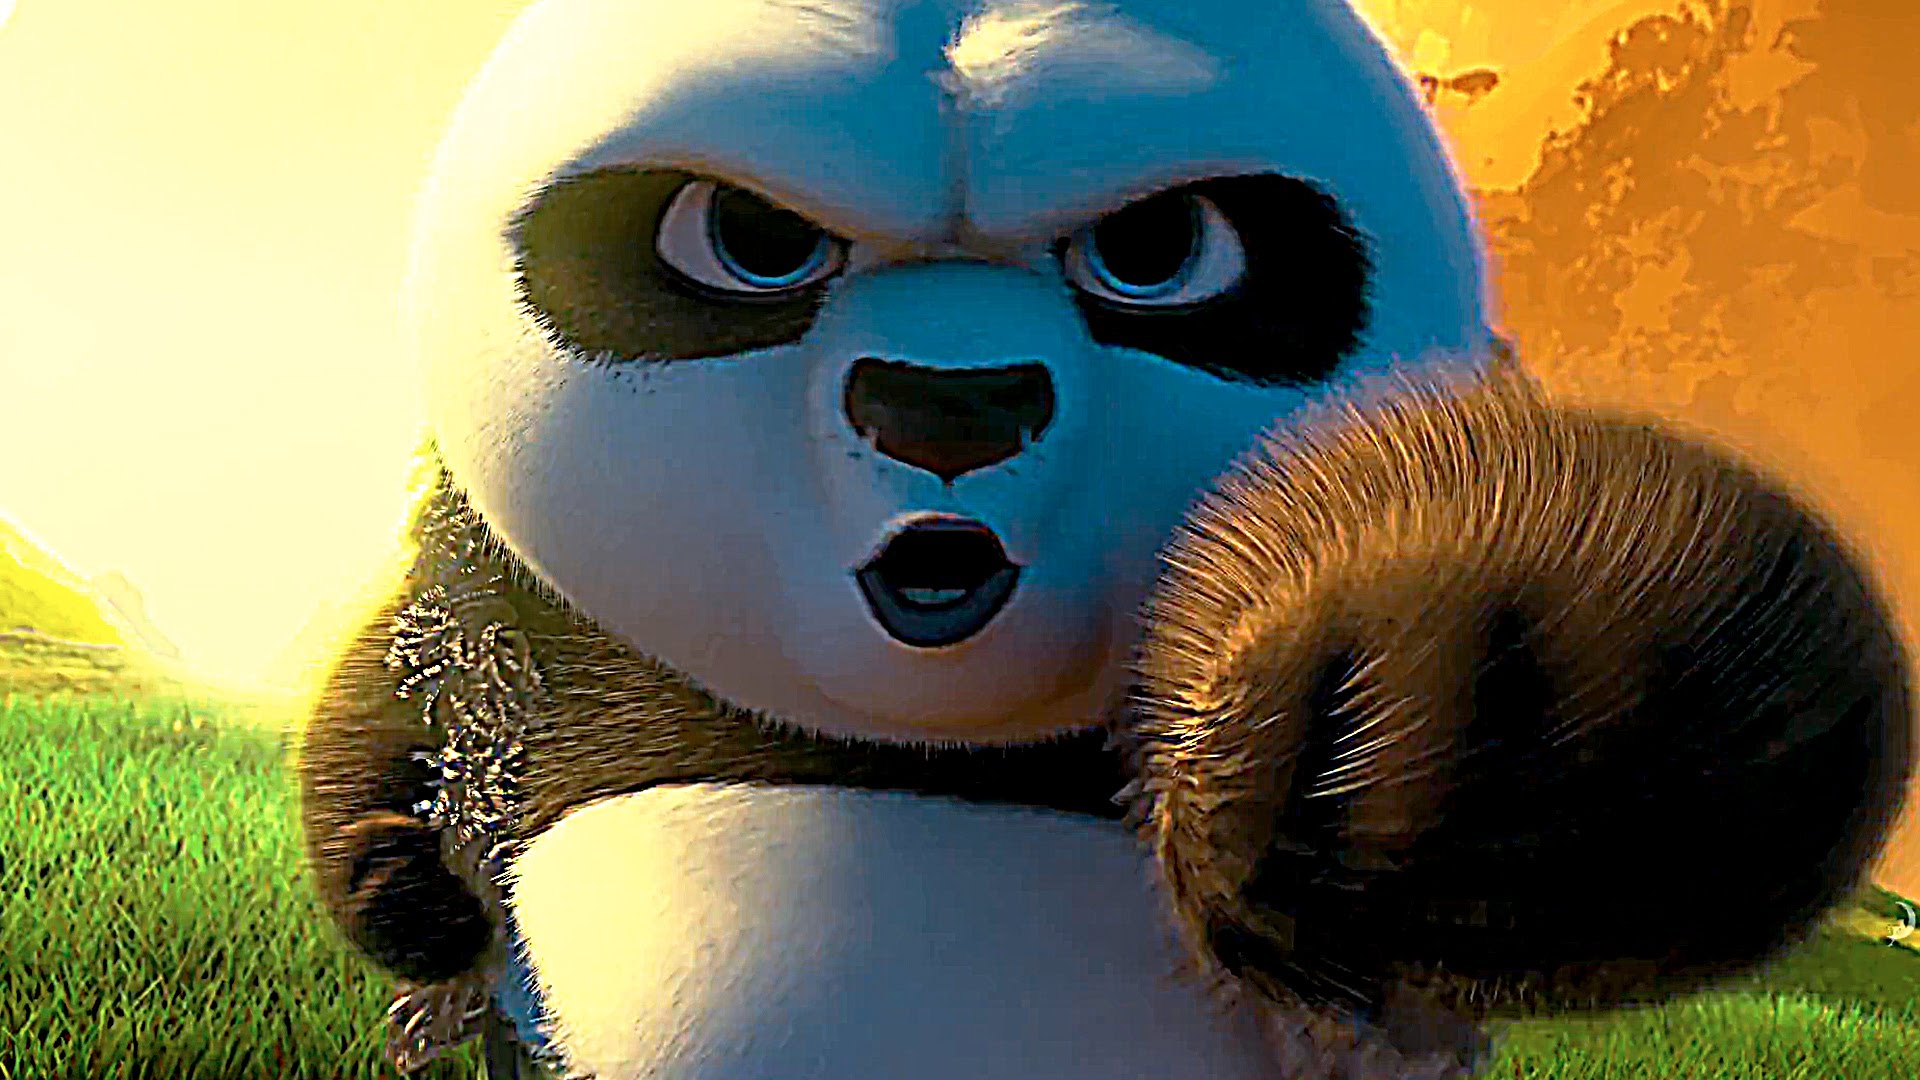 Kung fu panda 3 movie photos